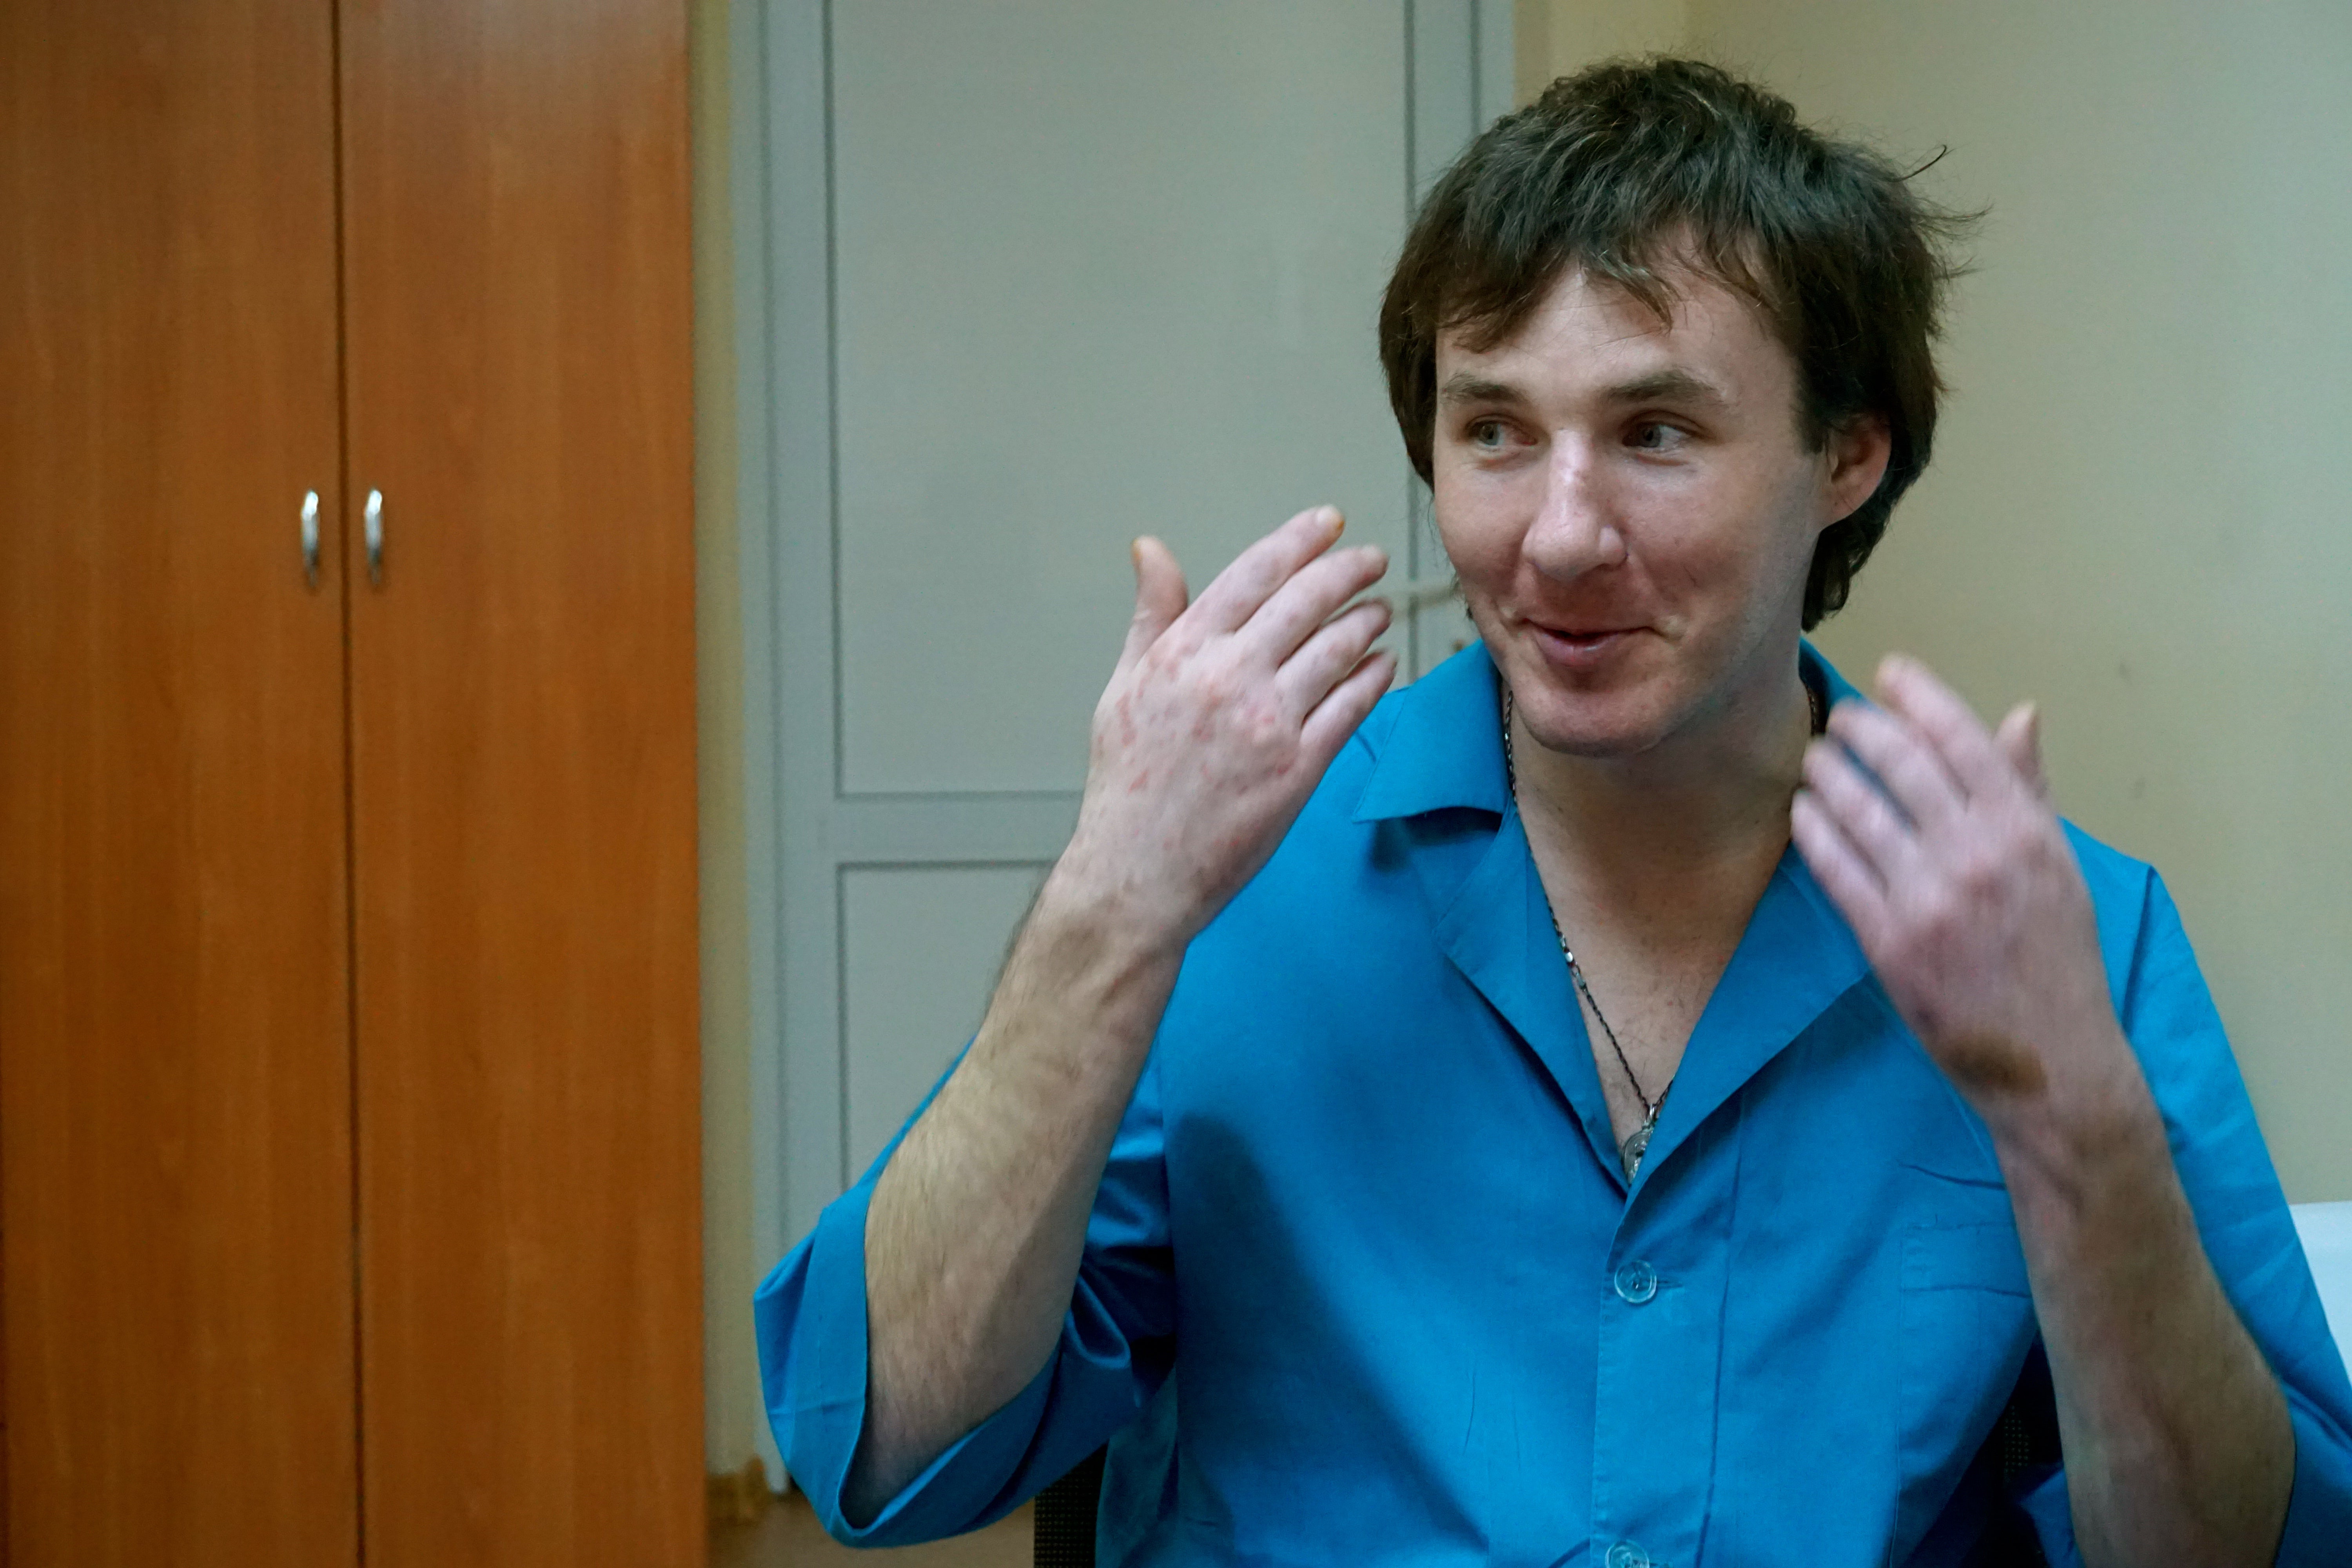 Krypychenko credited his religious faith and a good sense of humor with his ability to maintain hope throughout his captivity. (Photo: Nolan Peterson/The Daily Signal)